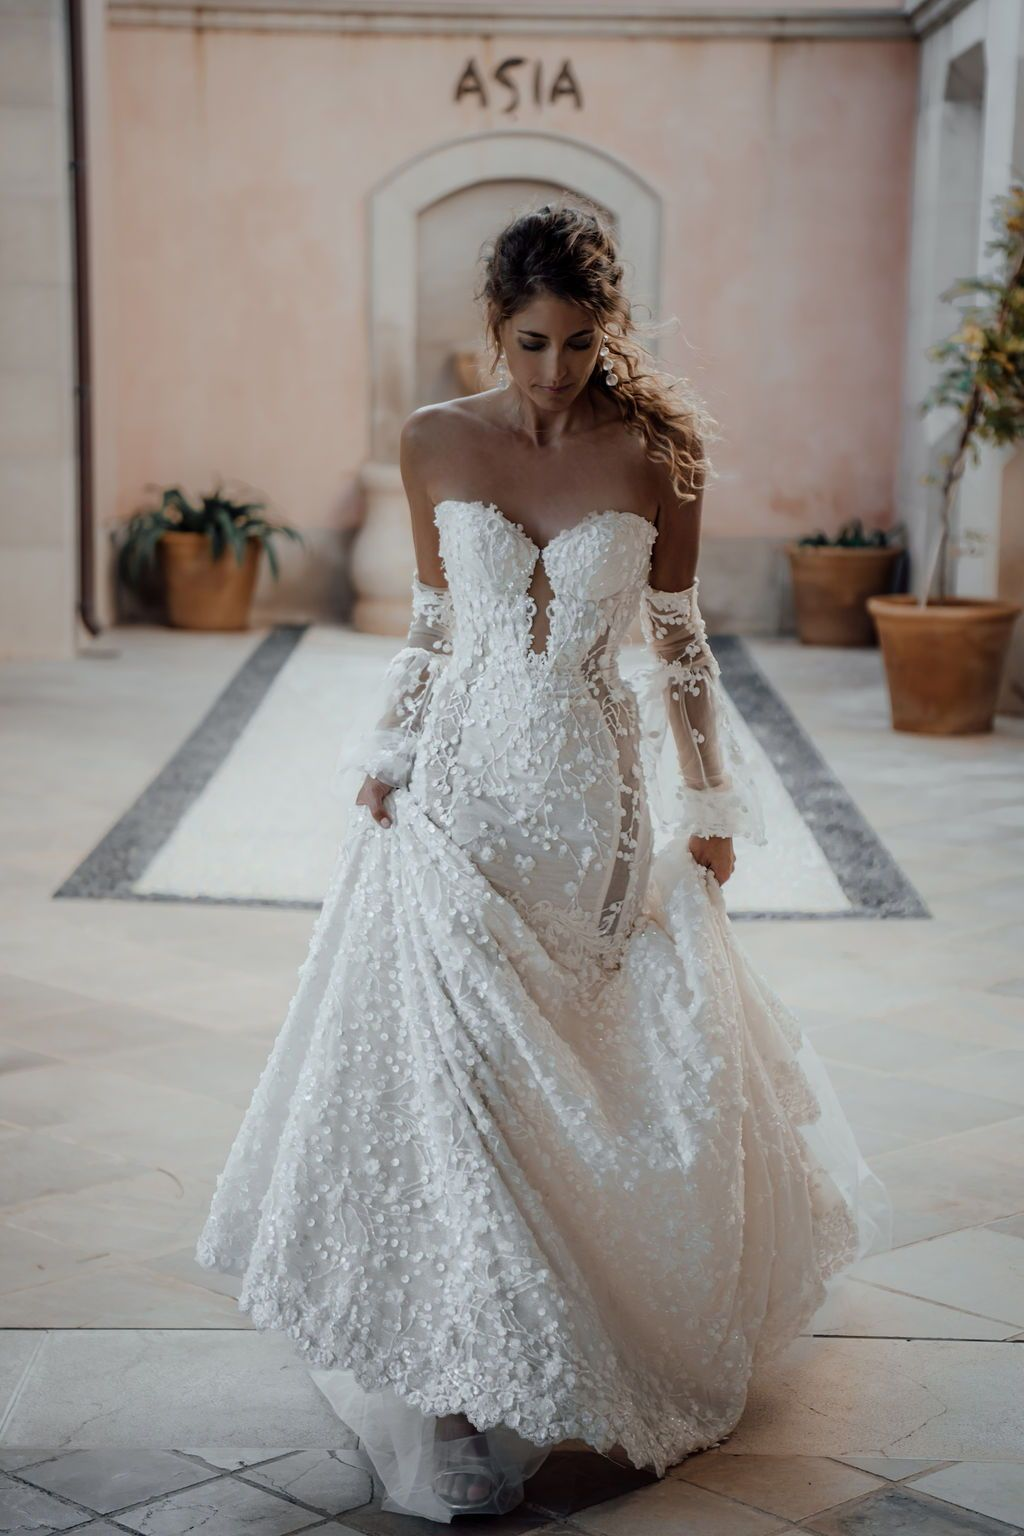 c1b47a0f10 For a love of fashion, romance and glamour - our beautiful fitted off-the